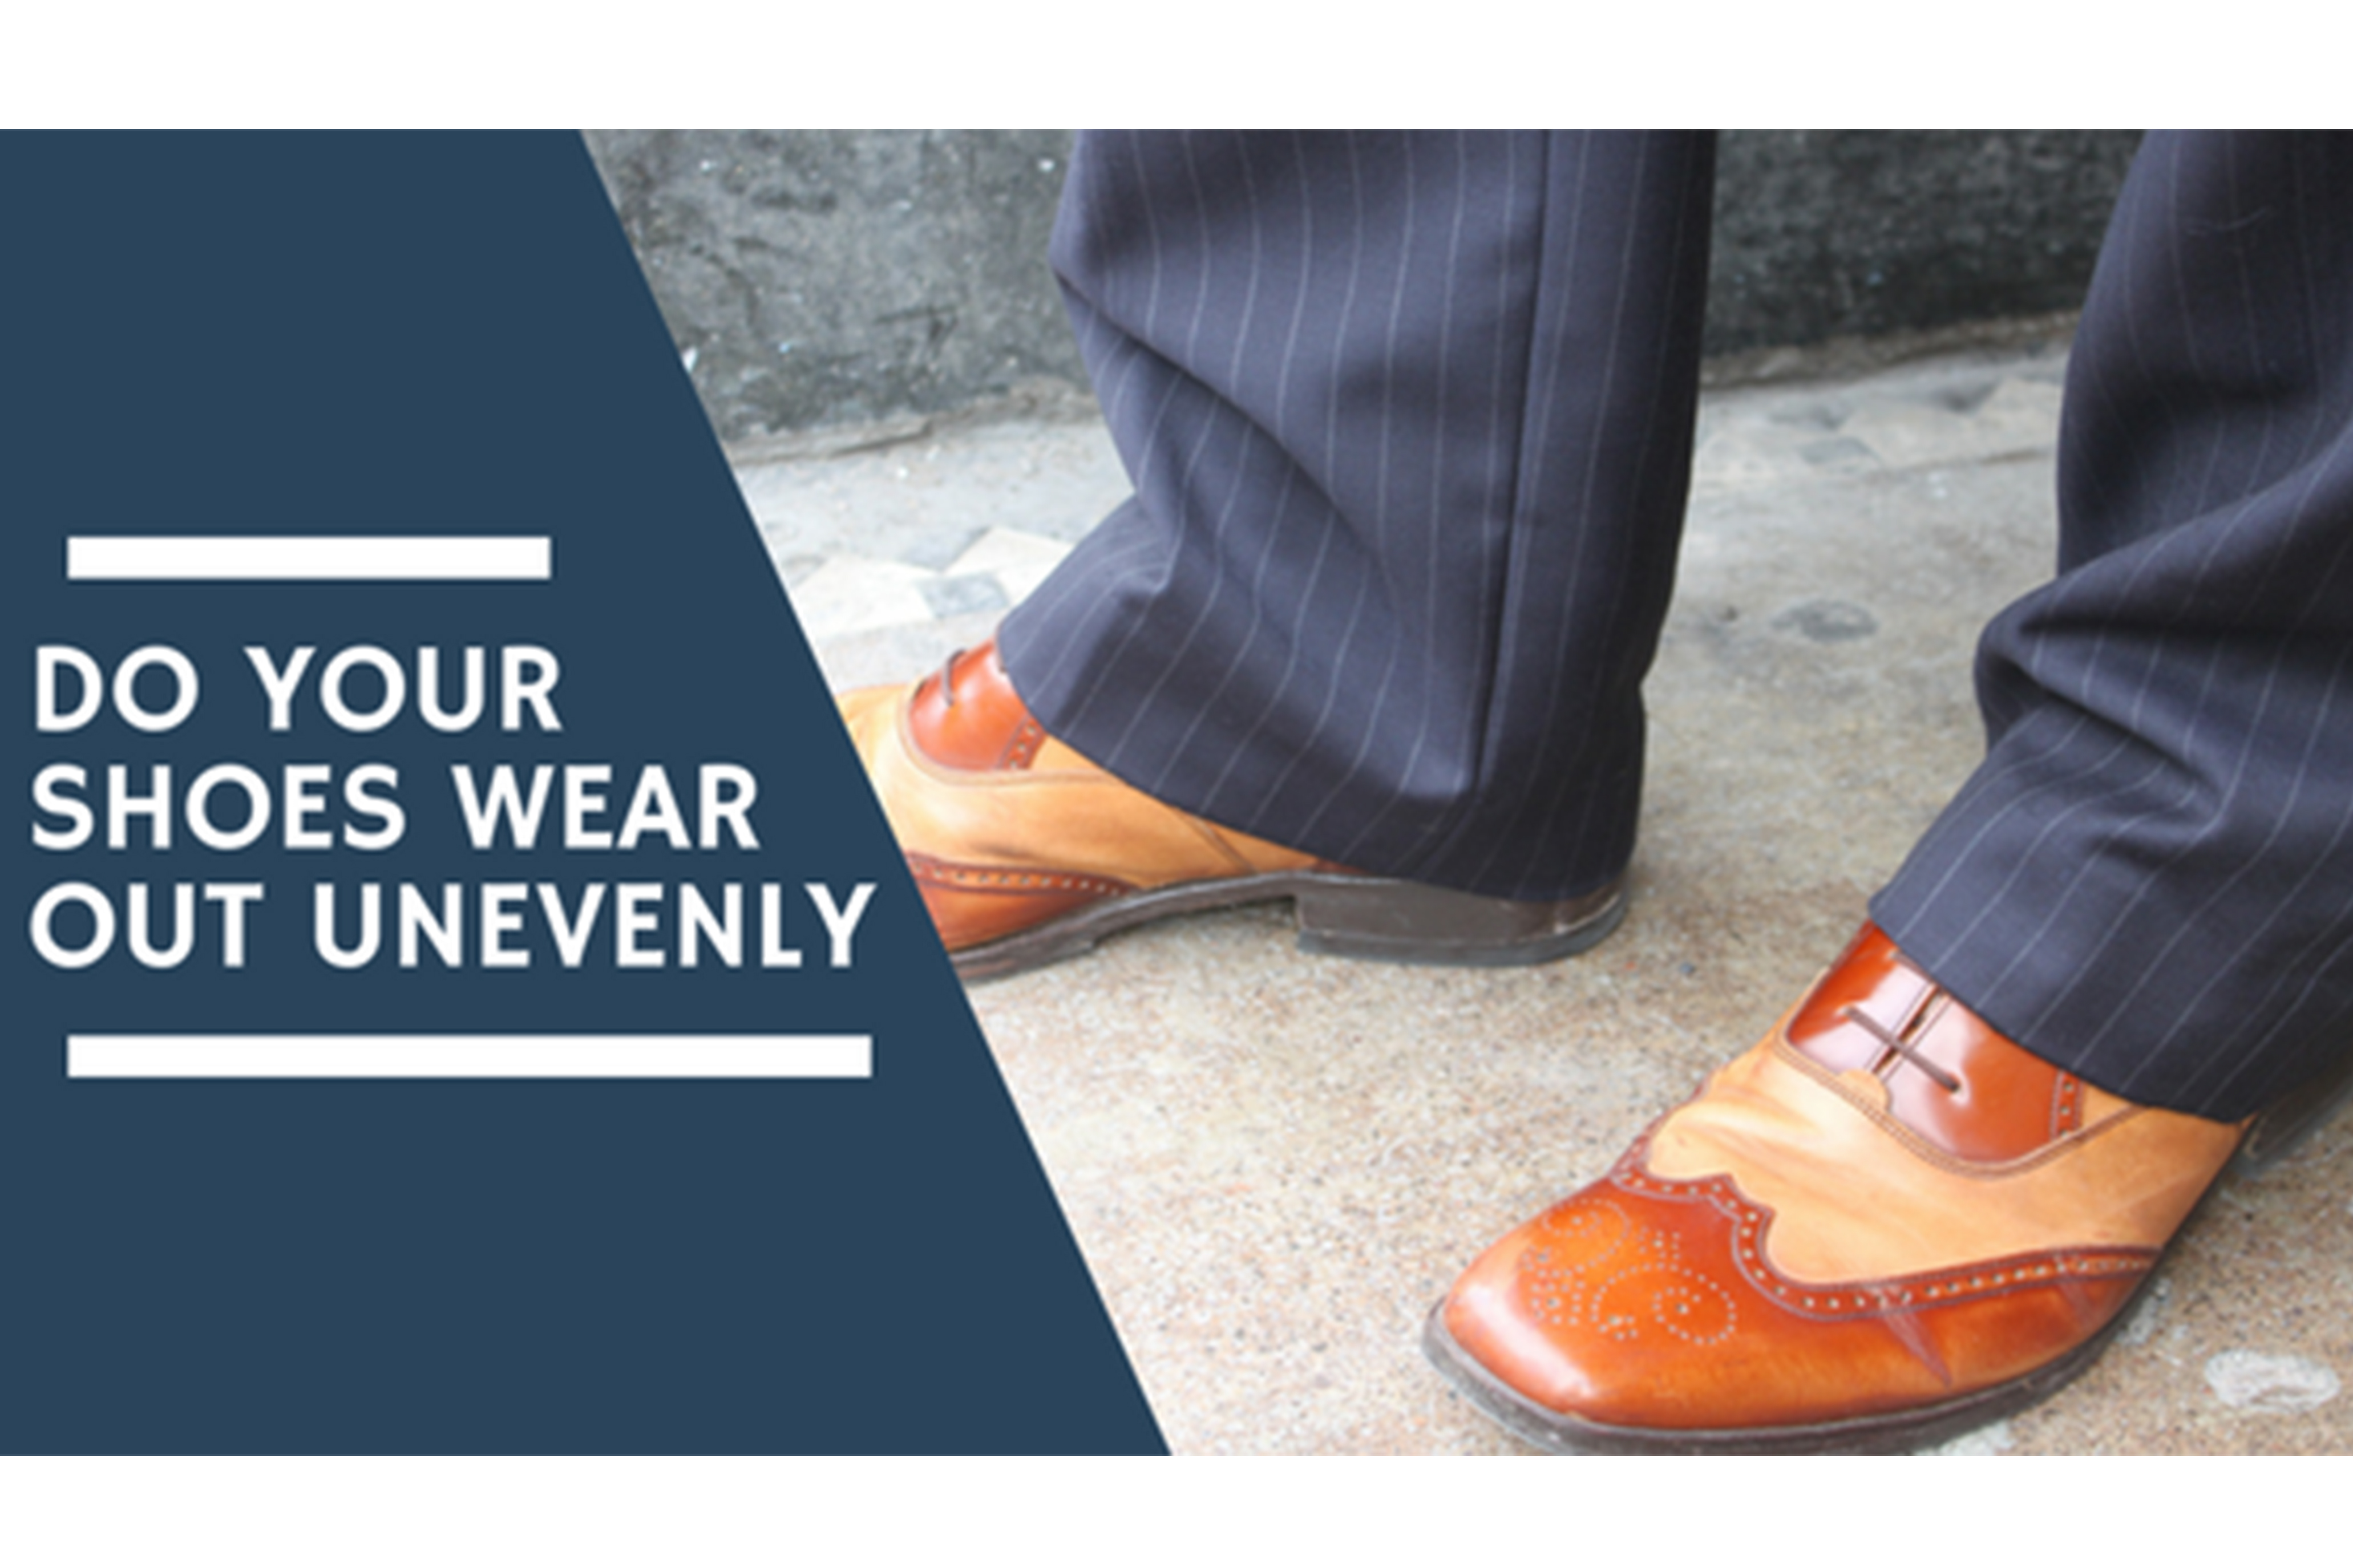 Do your shoes wear out unevenly?